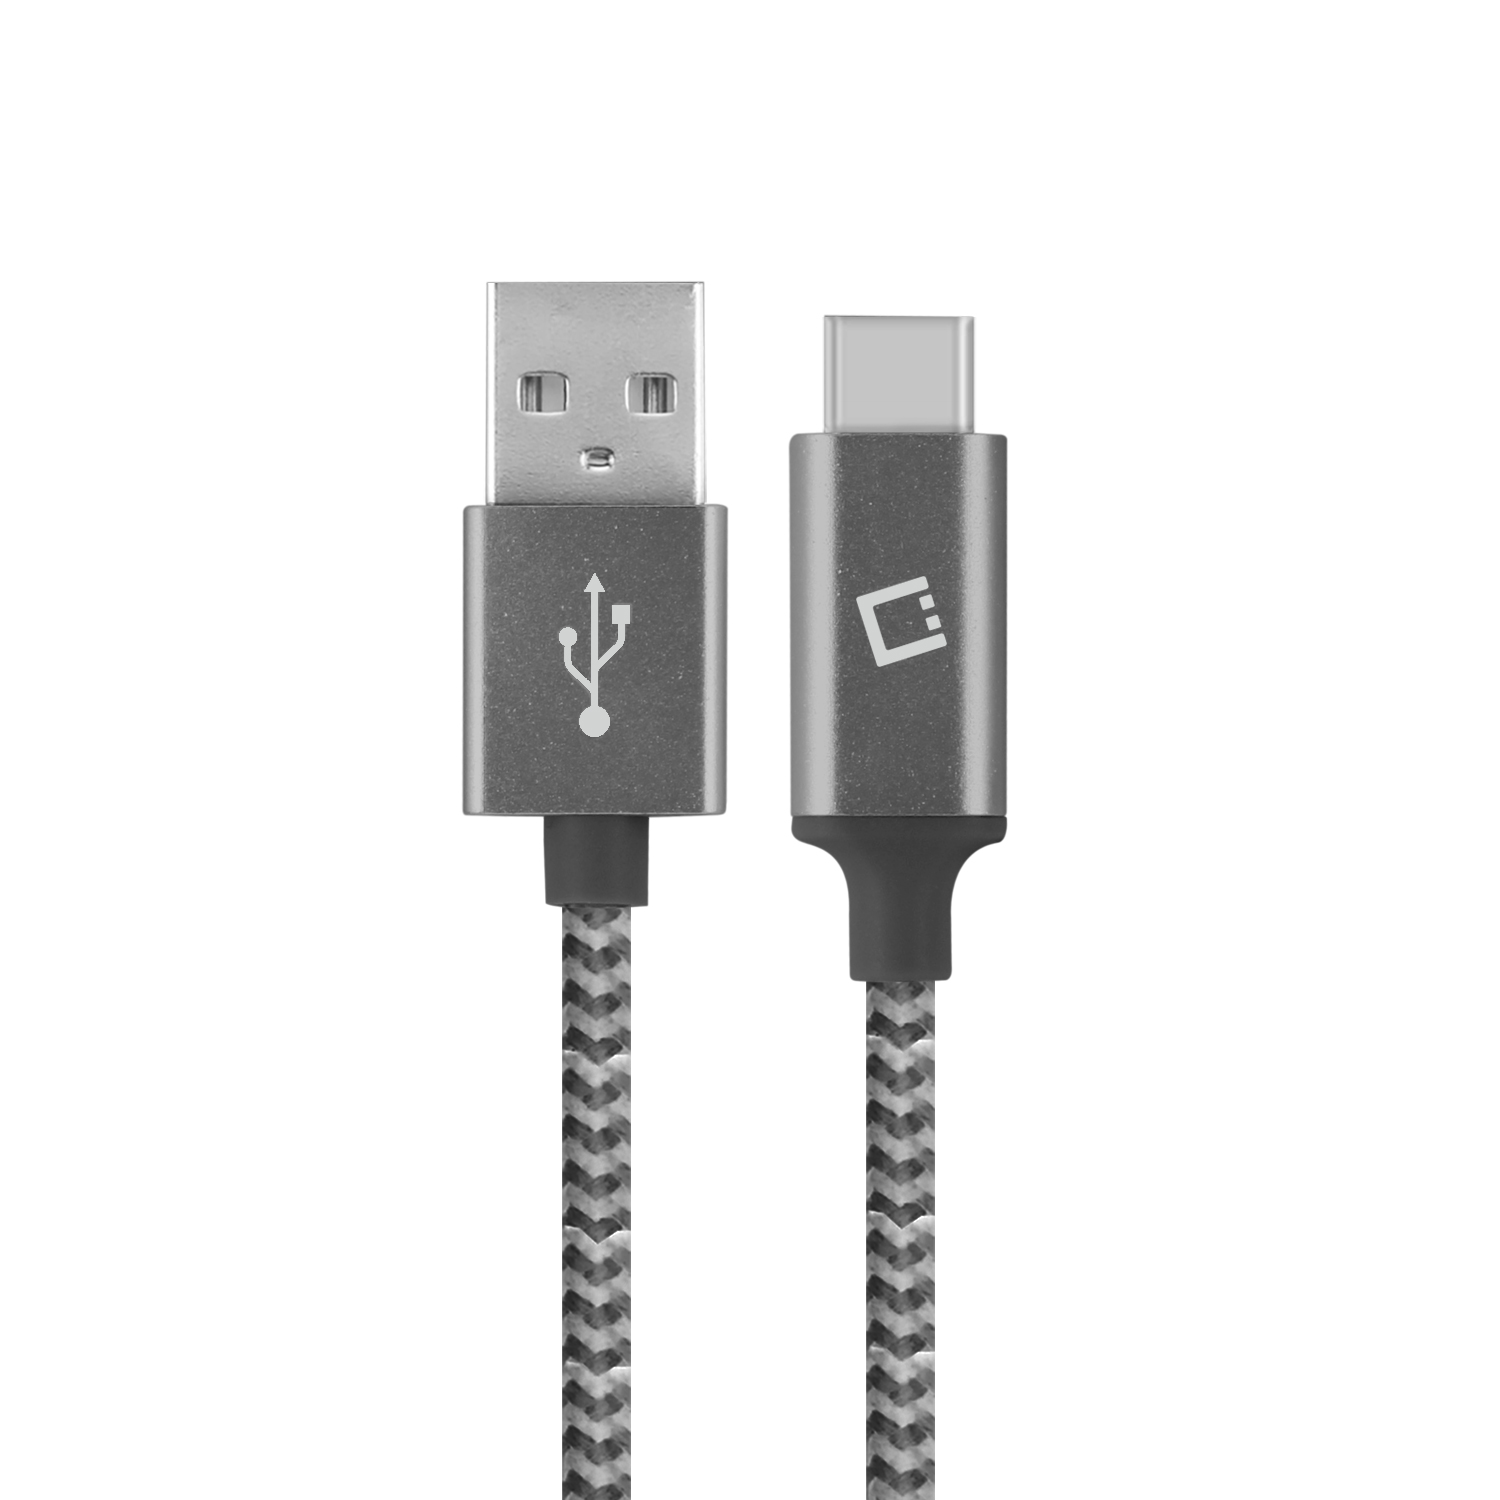 Sony Xperia XA1 USB Type-C To Type-A Braided Data Power Cable Black 4ft Round